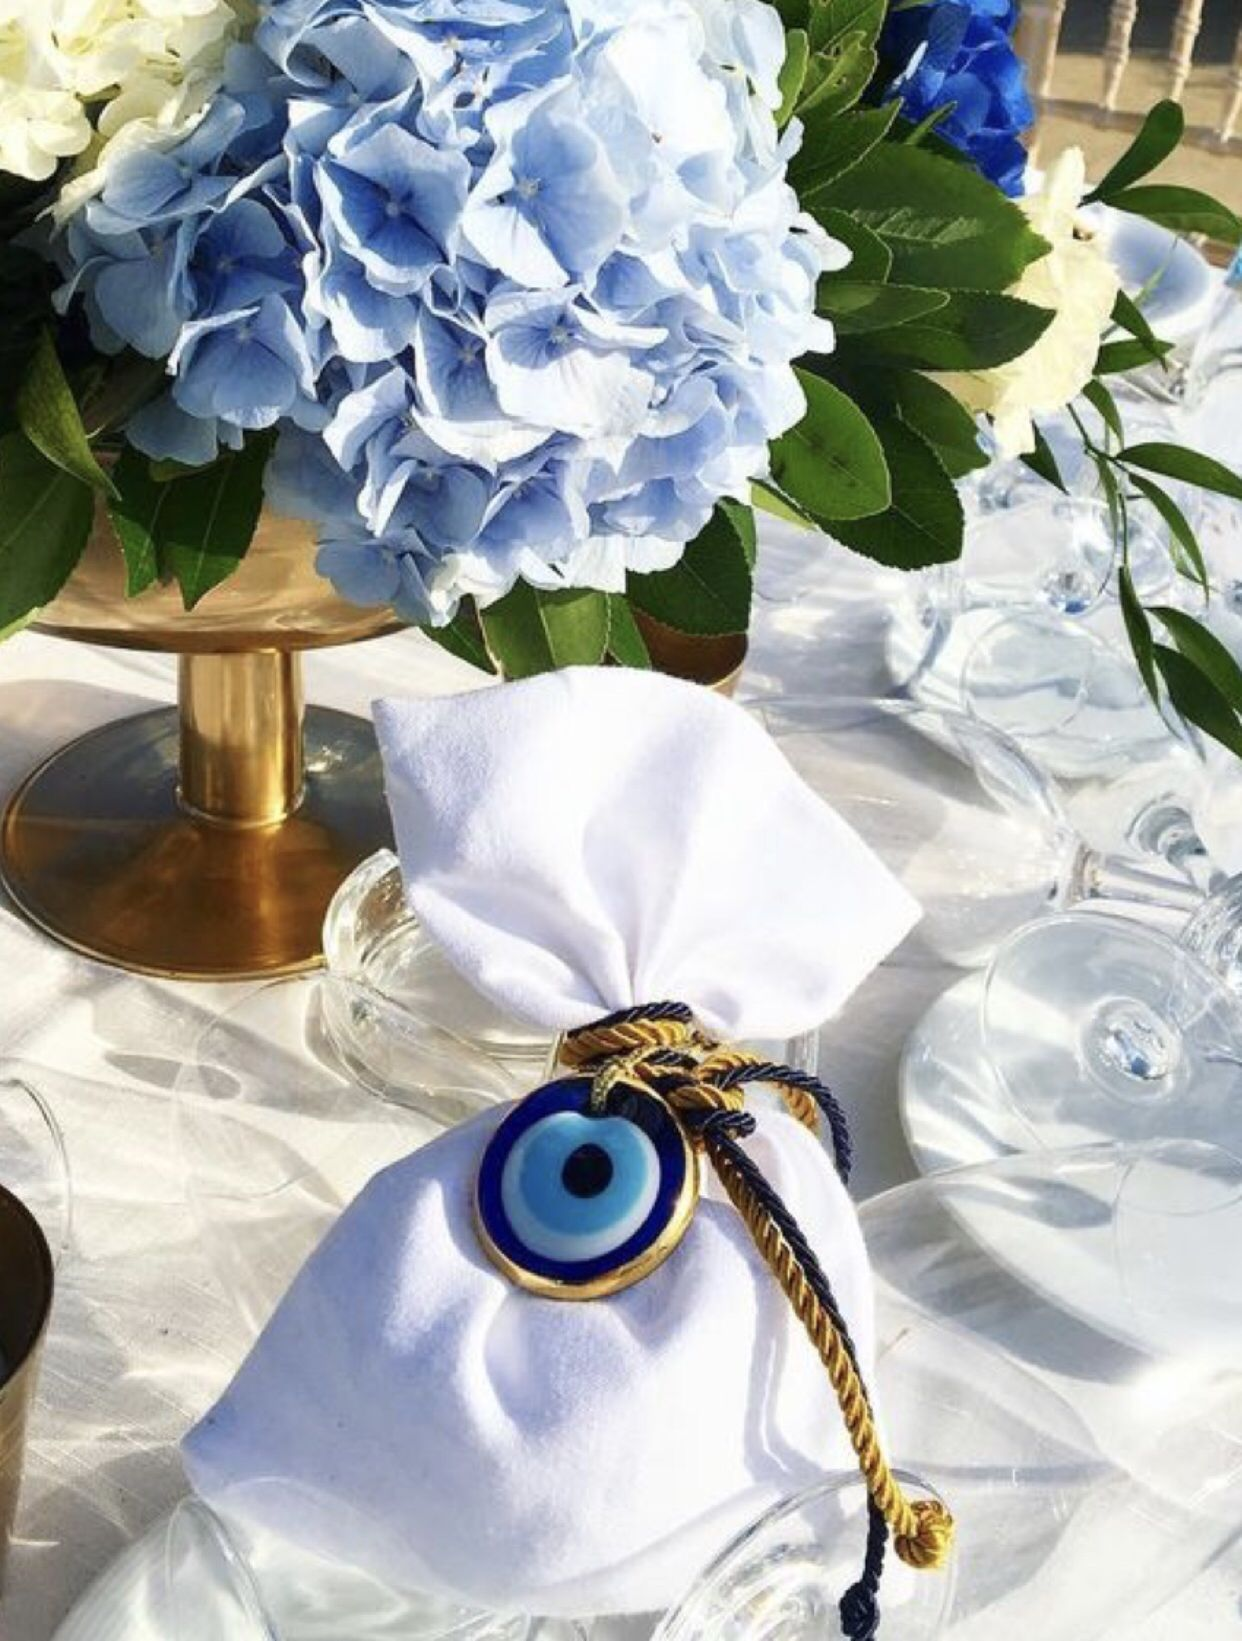 100 pcs Wedding favors for guests evil eye charm gold wedding favors turkish evil eye un 100 pcs Wedding favors for guests evil eye charm gold wedding favors turkish evil...